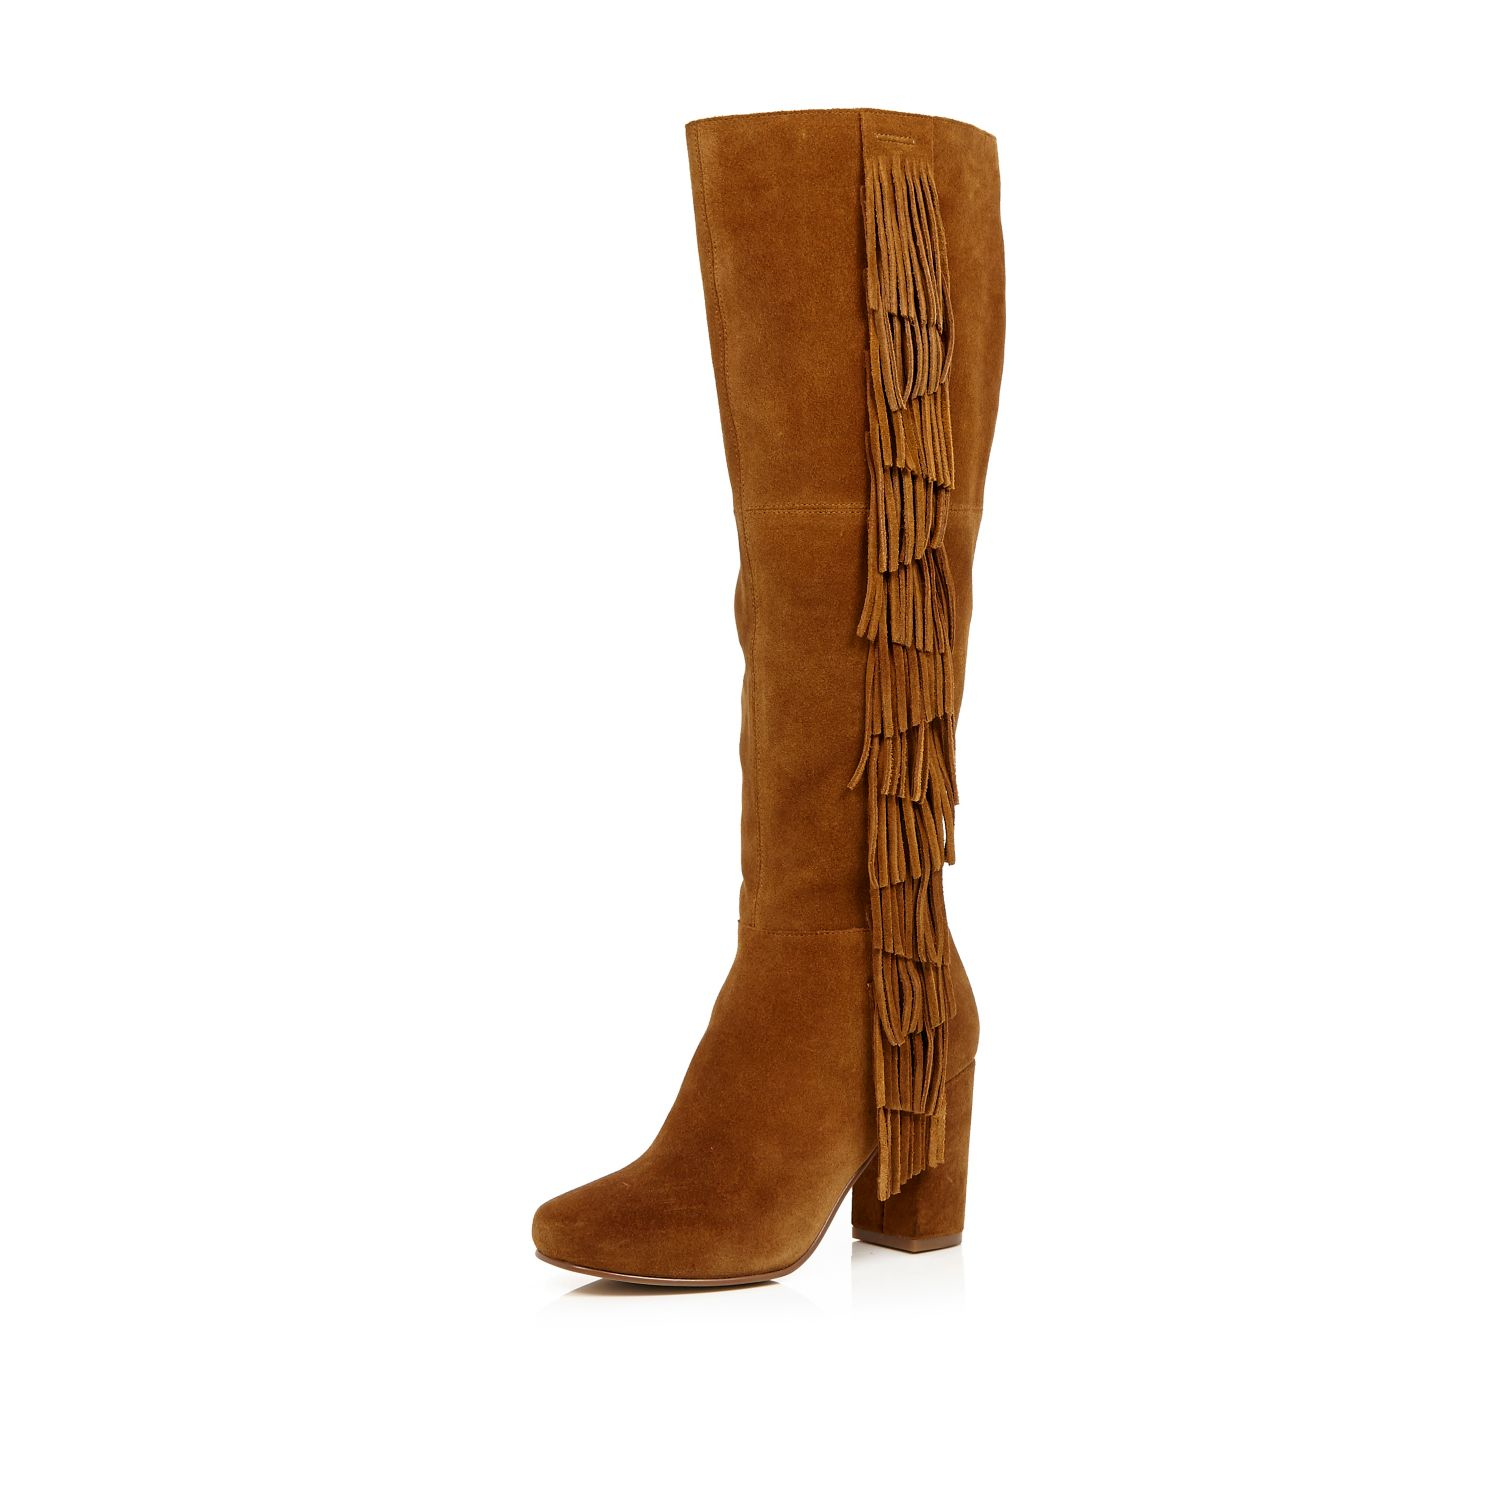 Shop knee high leather boot at Neiman Marcus, where you will find free shipping on the latest in fashion from top designers.